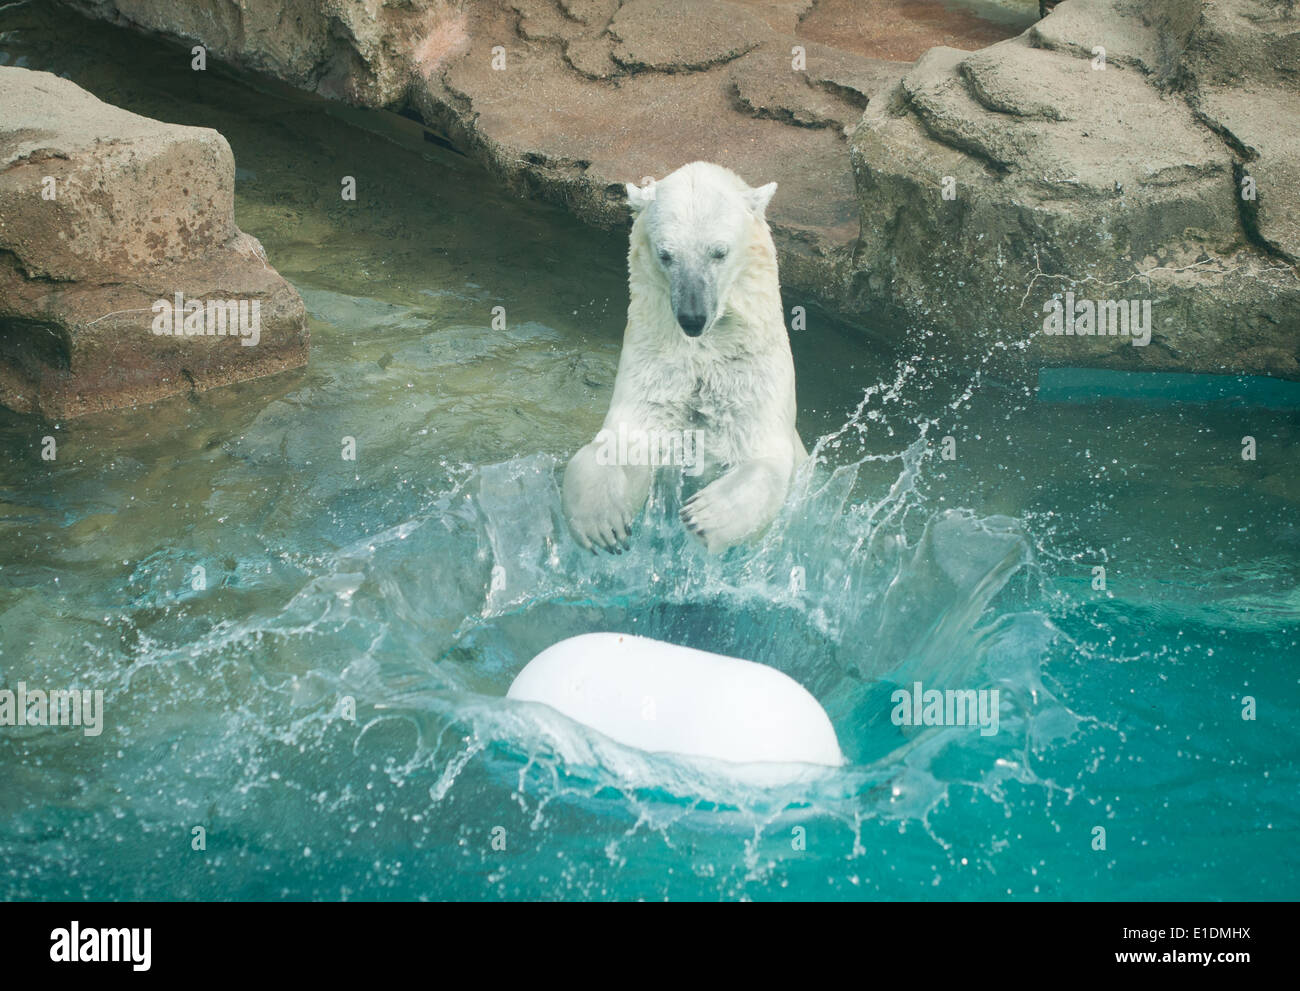 Anana, the resident Polar bear (Ursus maritimus) of Lincoln Park Zoo in Chicago, Illinois, plays in the water on Stock Photo